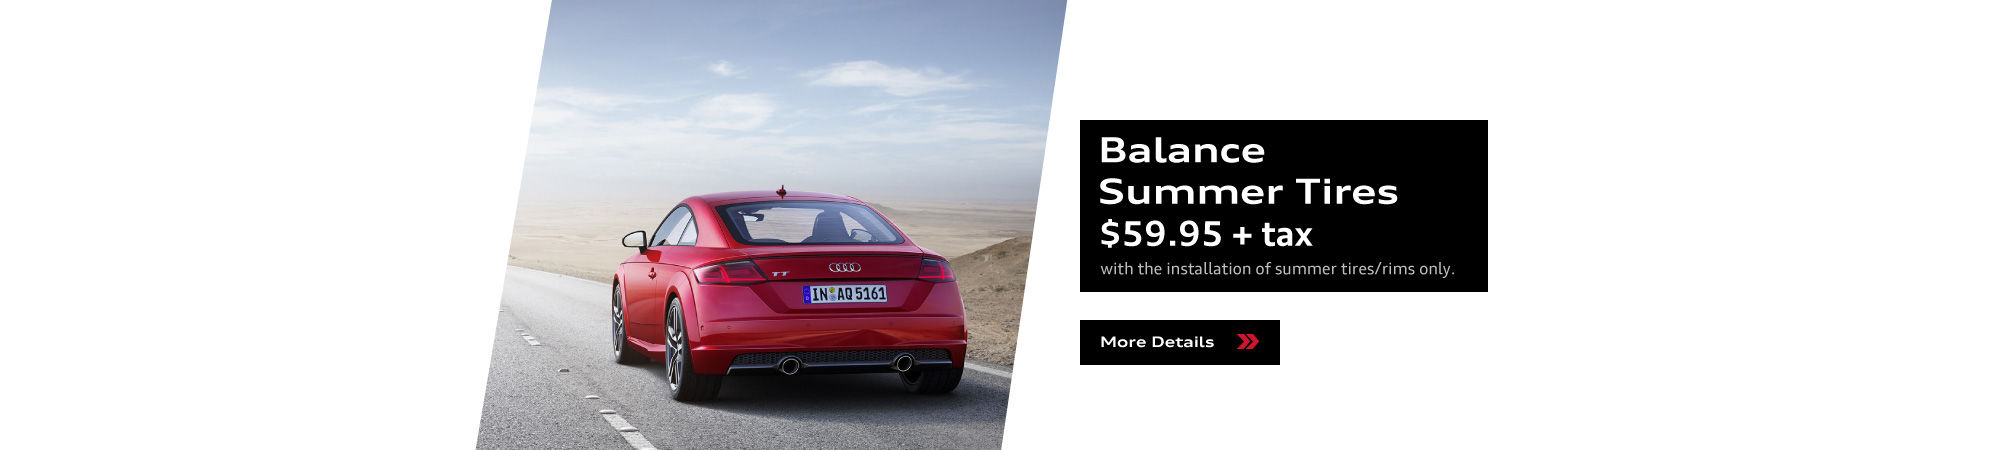 Balance Summer Tires Special Offer